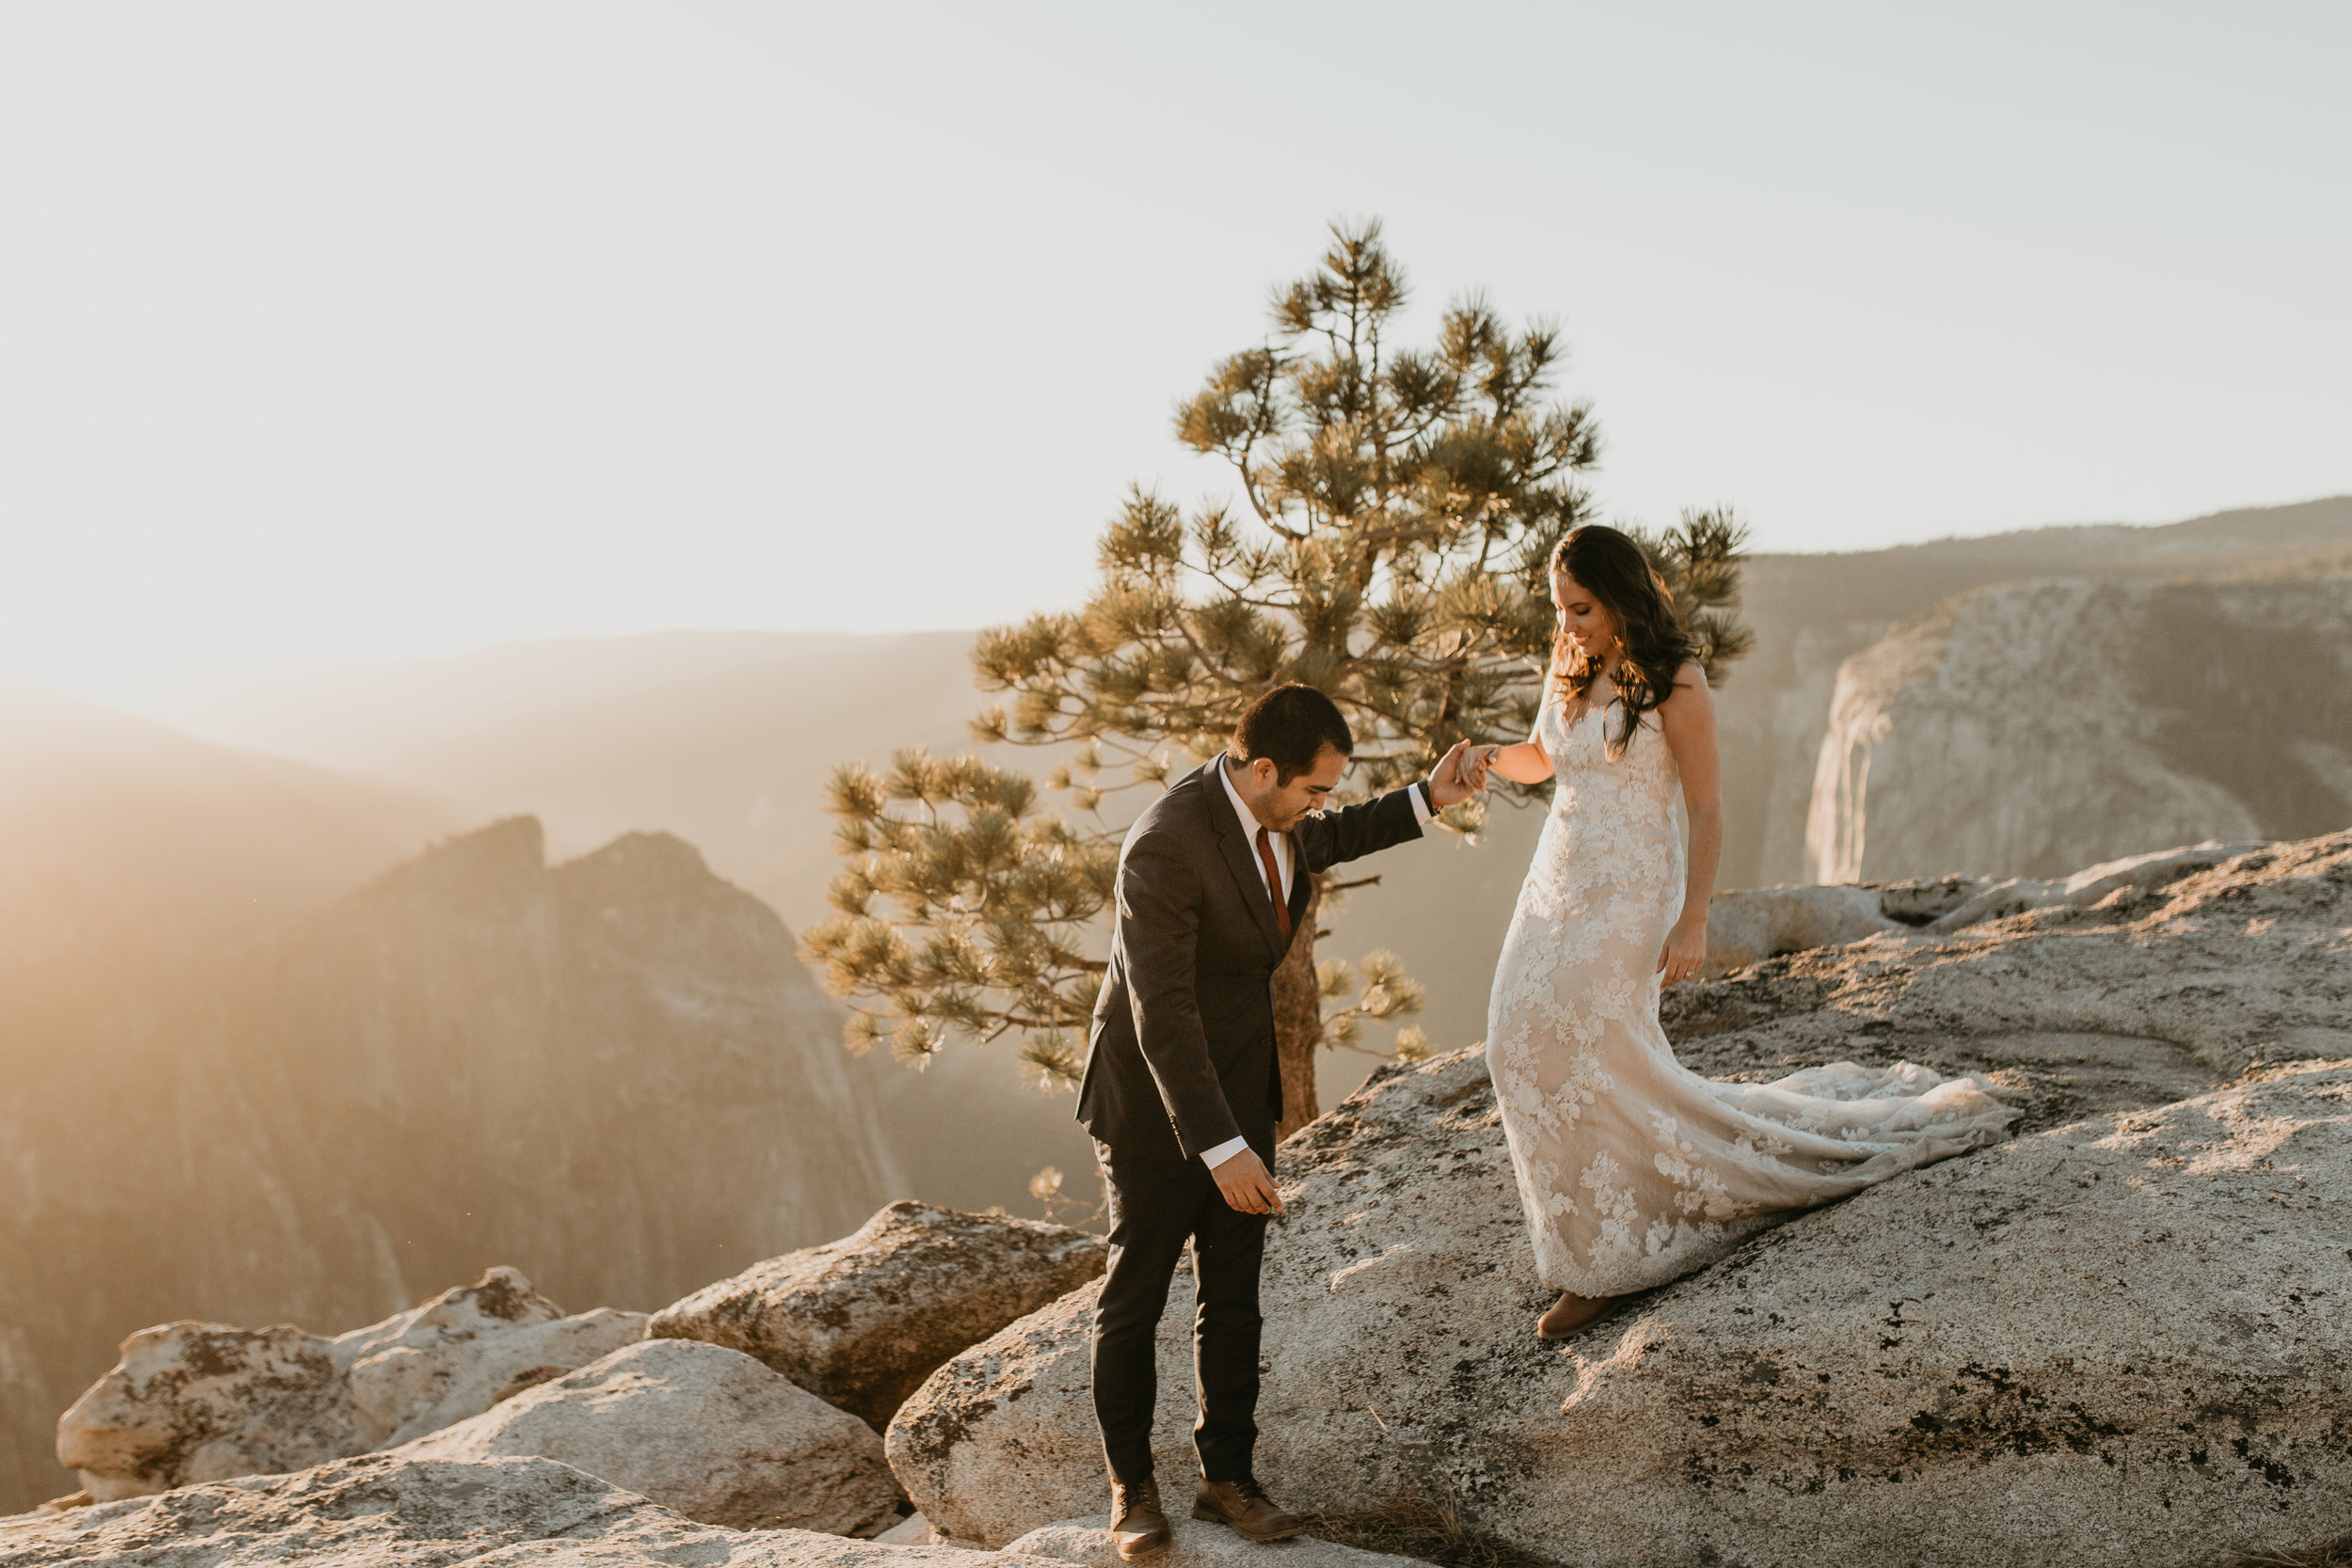 nicole-daacke-photography-intimate-elopement-wedding-yosemite-national-park-california-taft-point-sunset-photos-yosemite-valley-tunnel-view-first-look-sunrise-golden-granite-hiking-adventure-wedding-adventurous-elopement-photographer-106.jpg